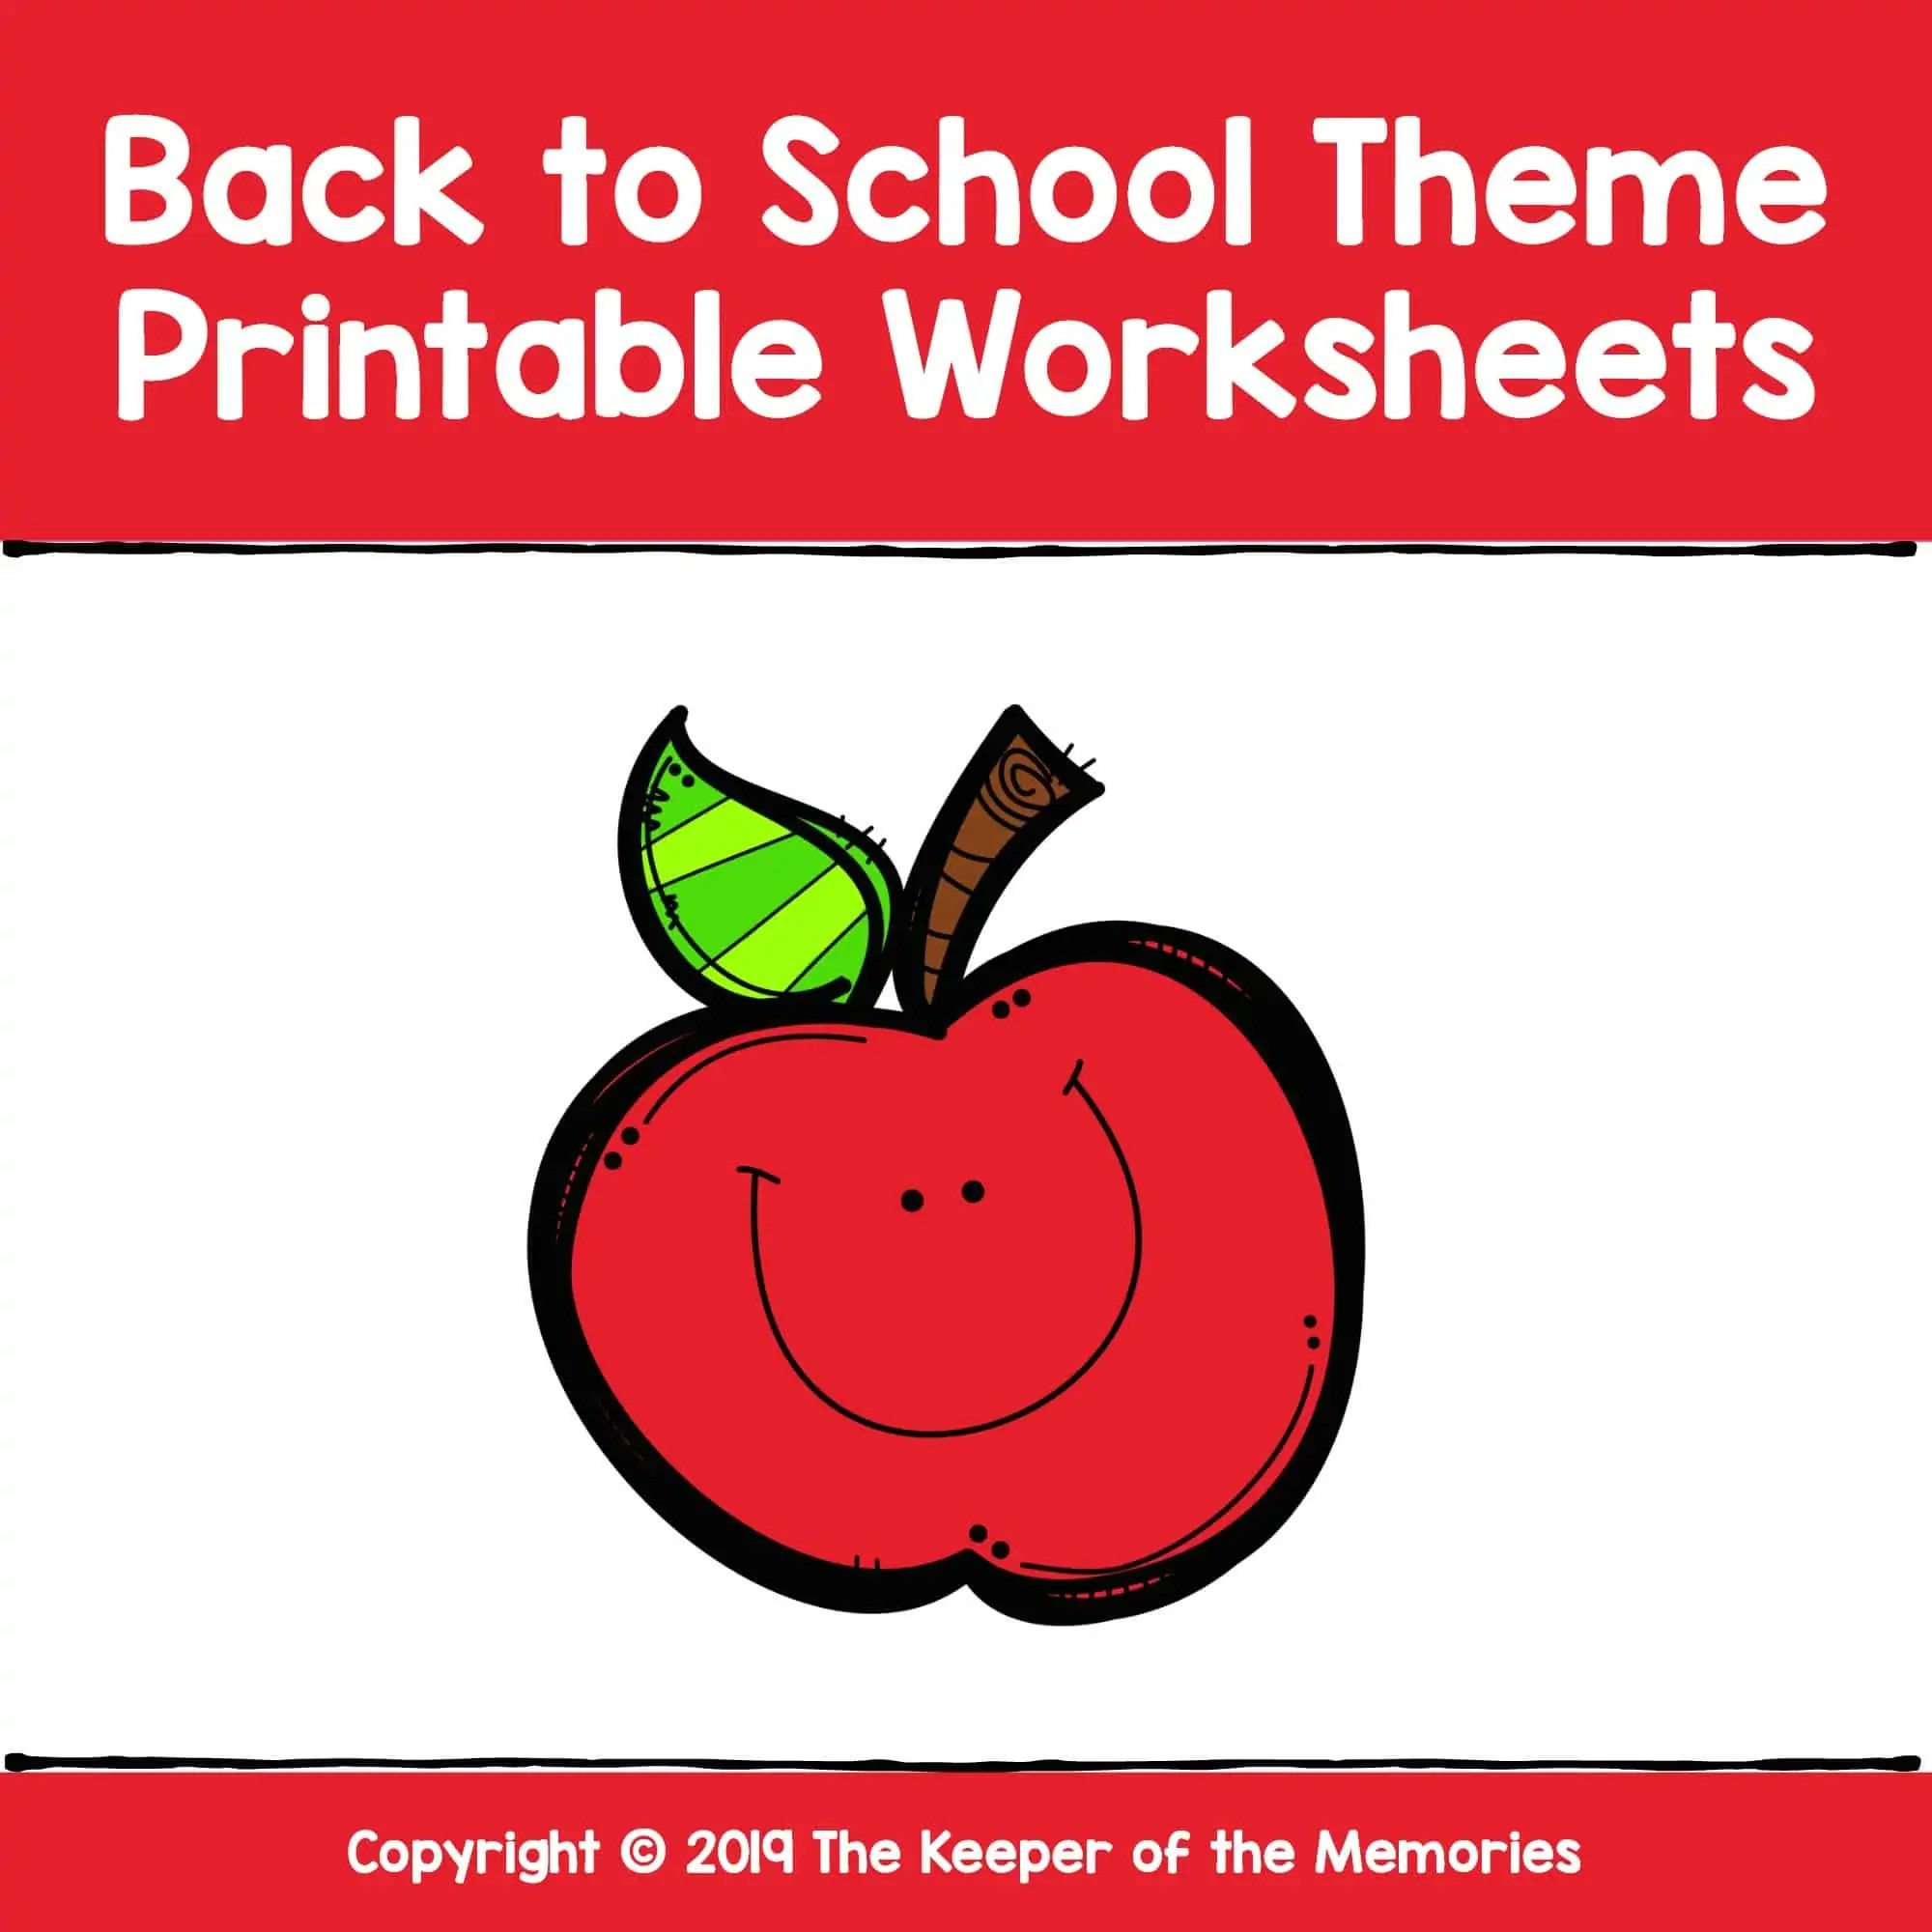 Back To School Theme Printable Worksheets Cover